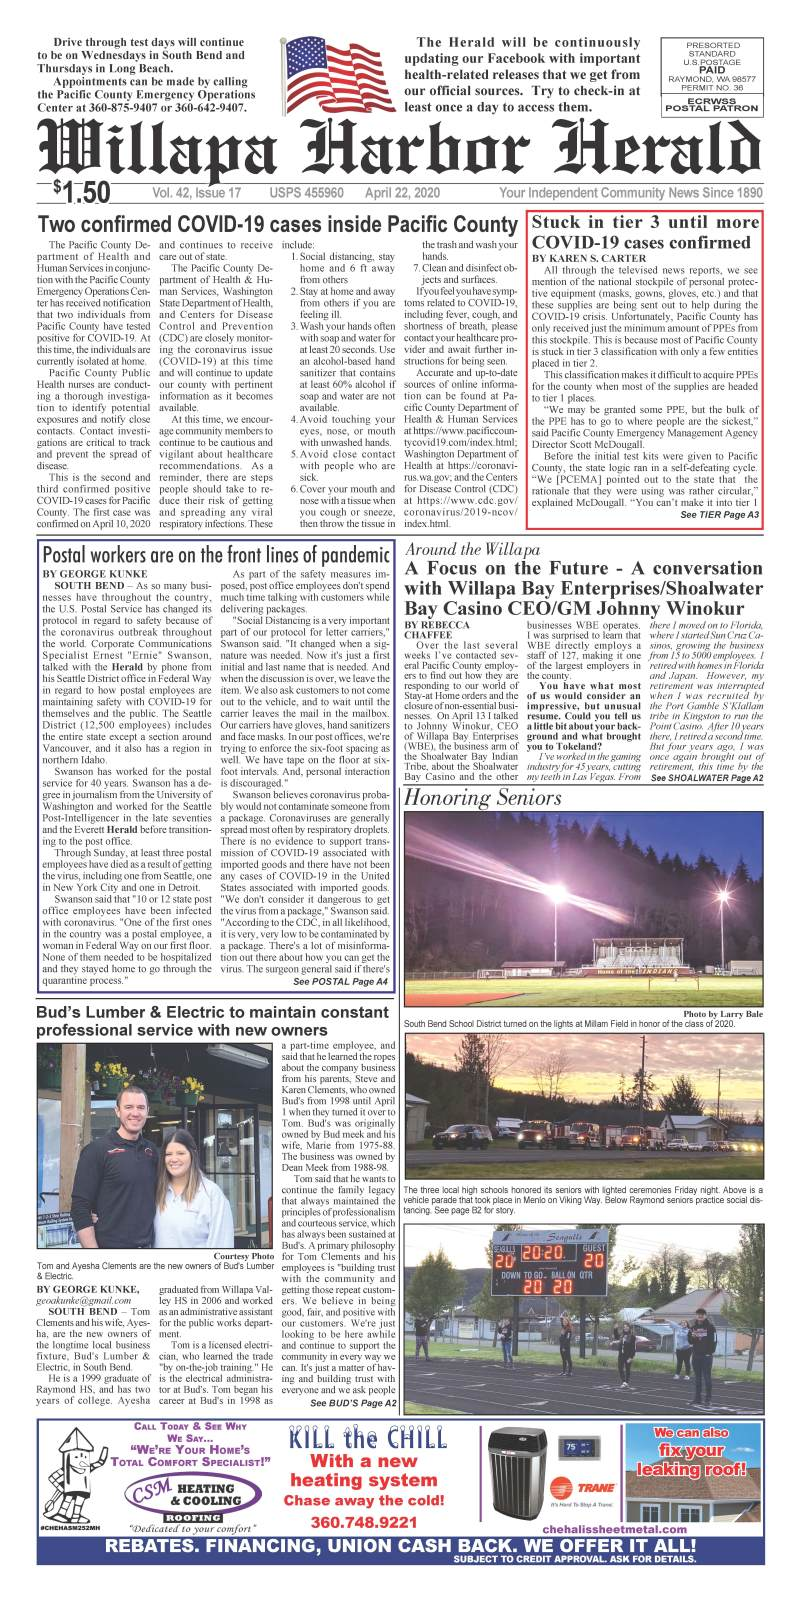 April 22, 2020 Willapa Harbor Herald and Pacific County Press